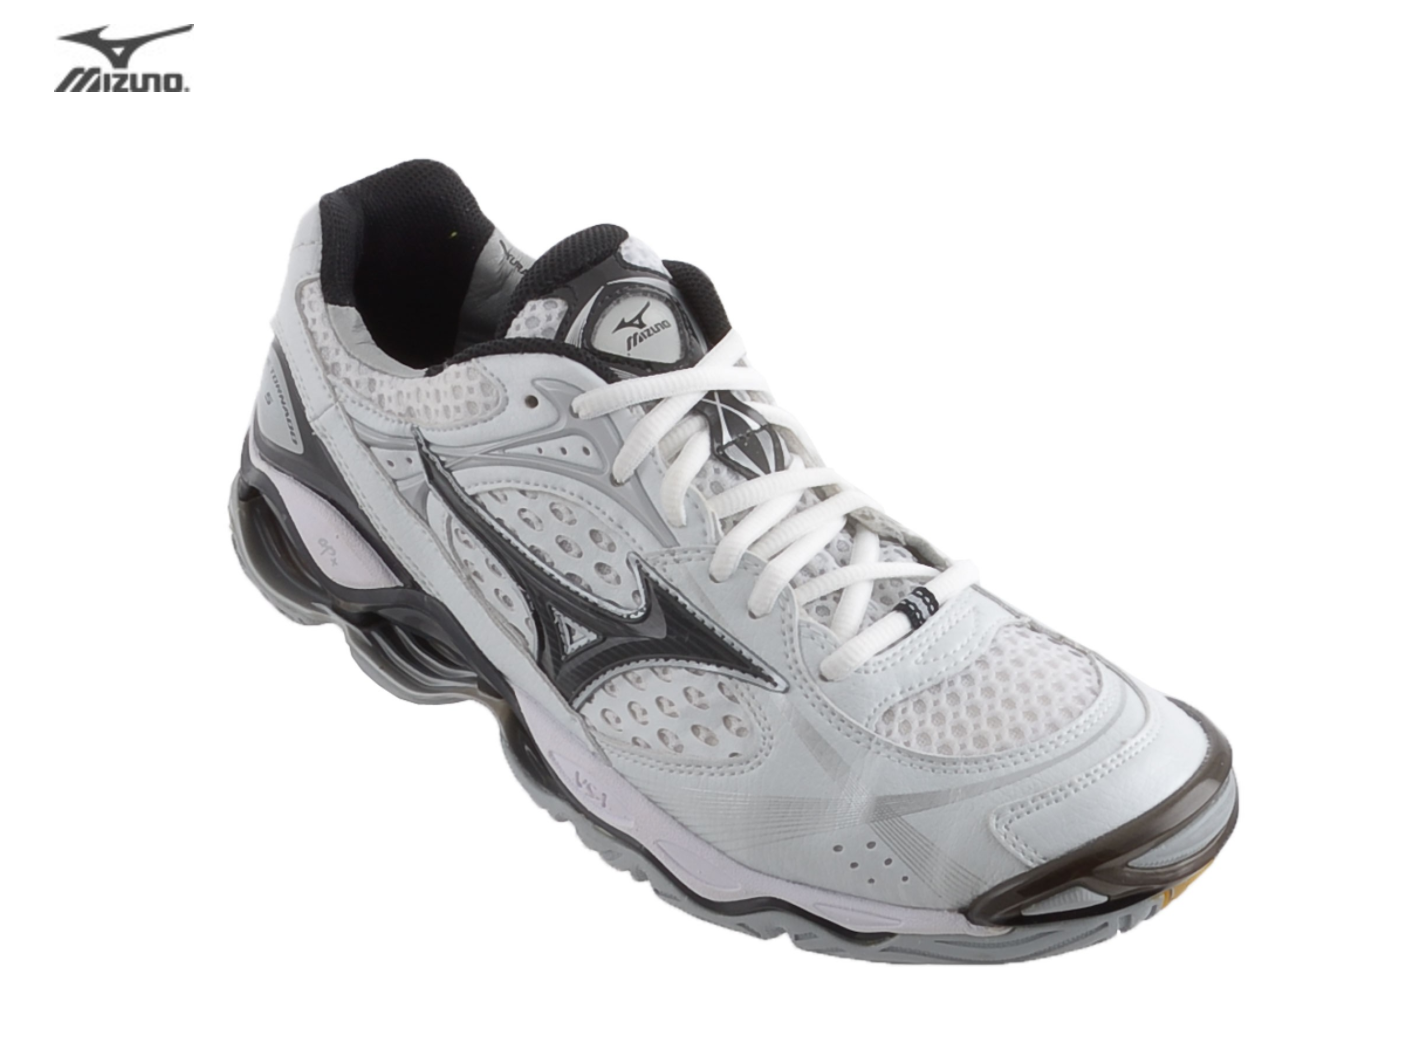 MIZUNO WAVE TORNADO TORNADO WAVE 5 INDOOR VOLLEYBALL Schuhe WOMEN 1685b3